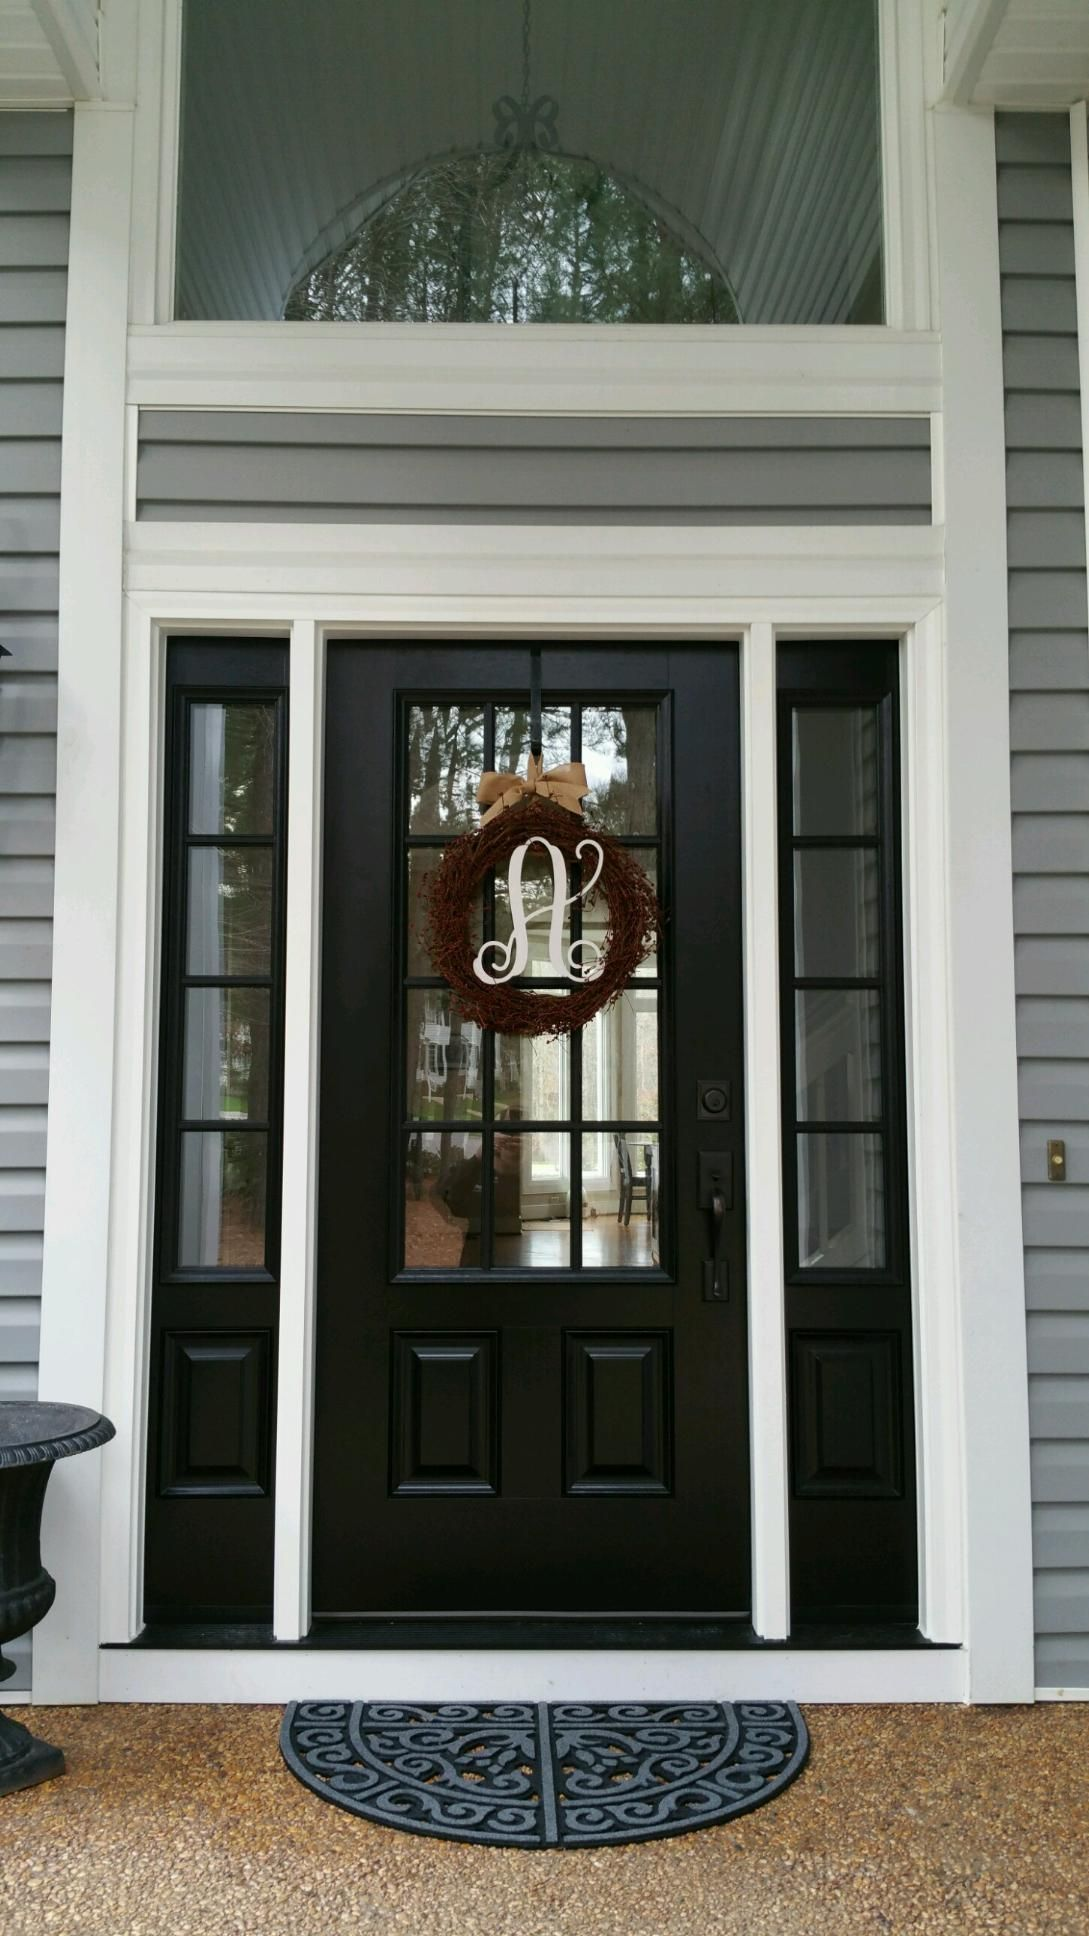 Model 440 Signet Fiberglass Front Entry Door Coal Black With Aged